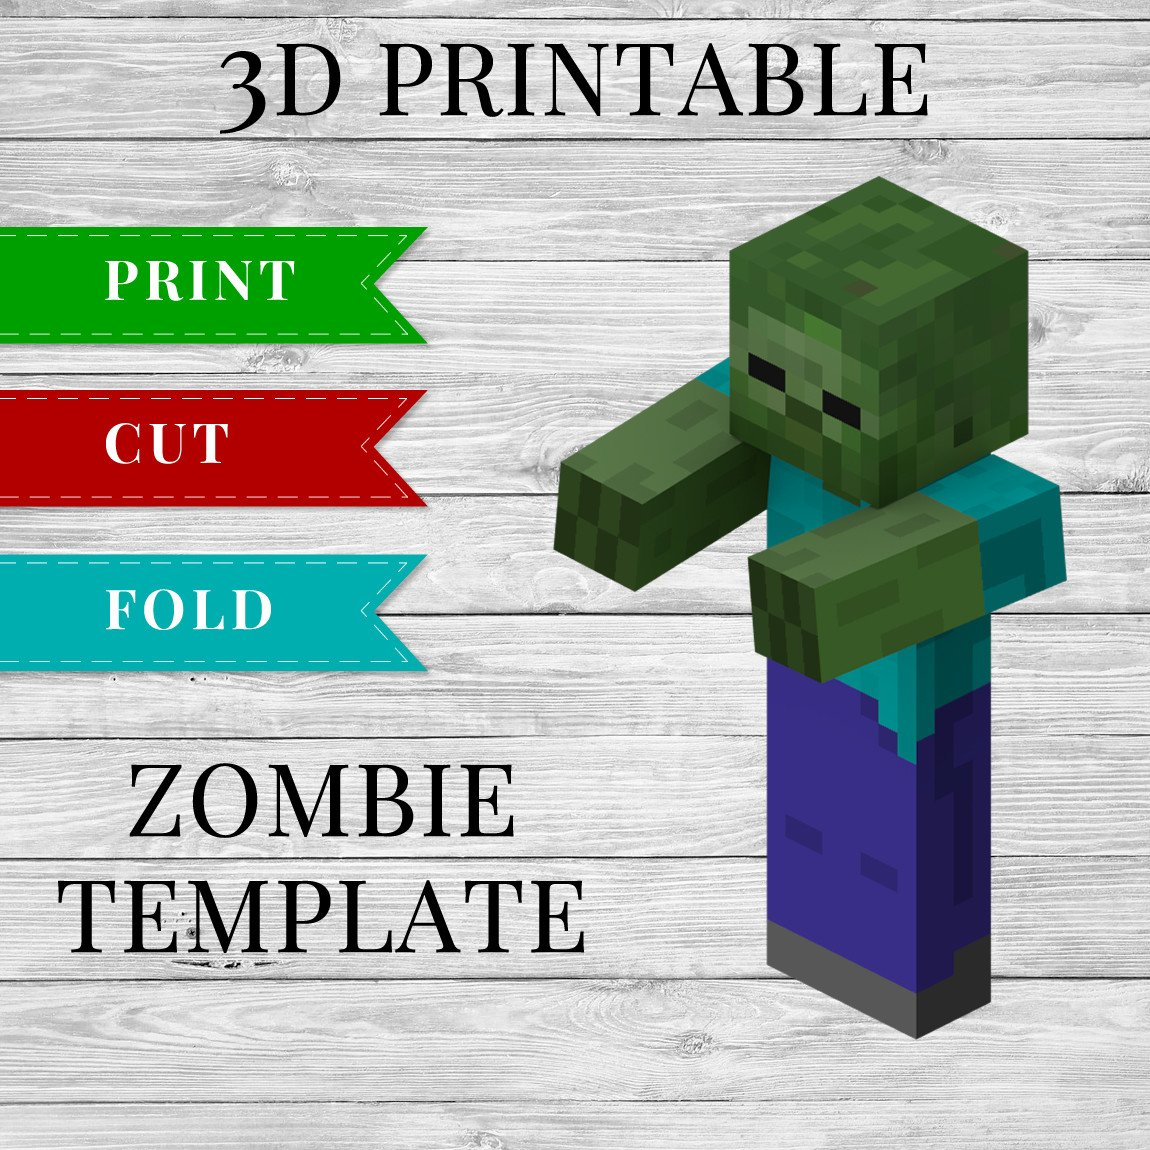 Minecraft Zombie Template Zombie Printable Minecraft Zombie Papercraft Template